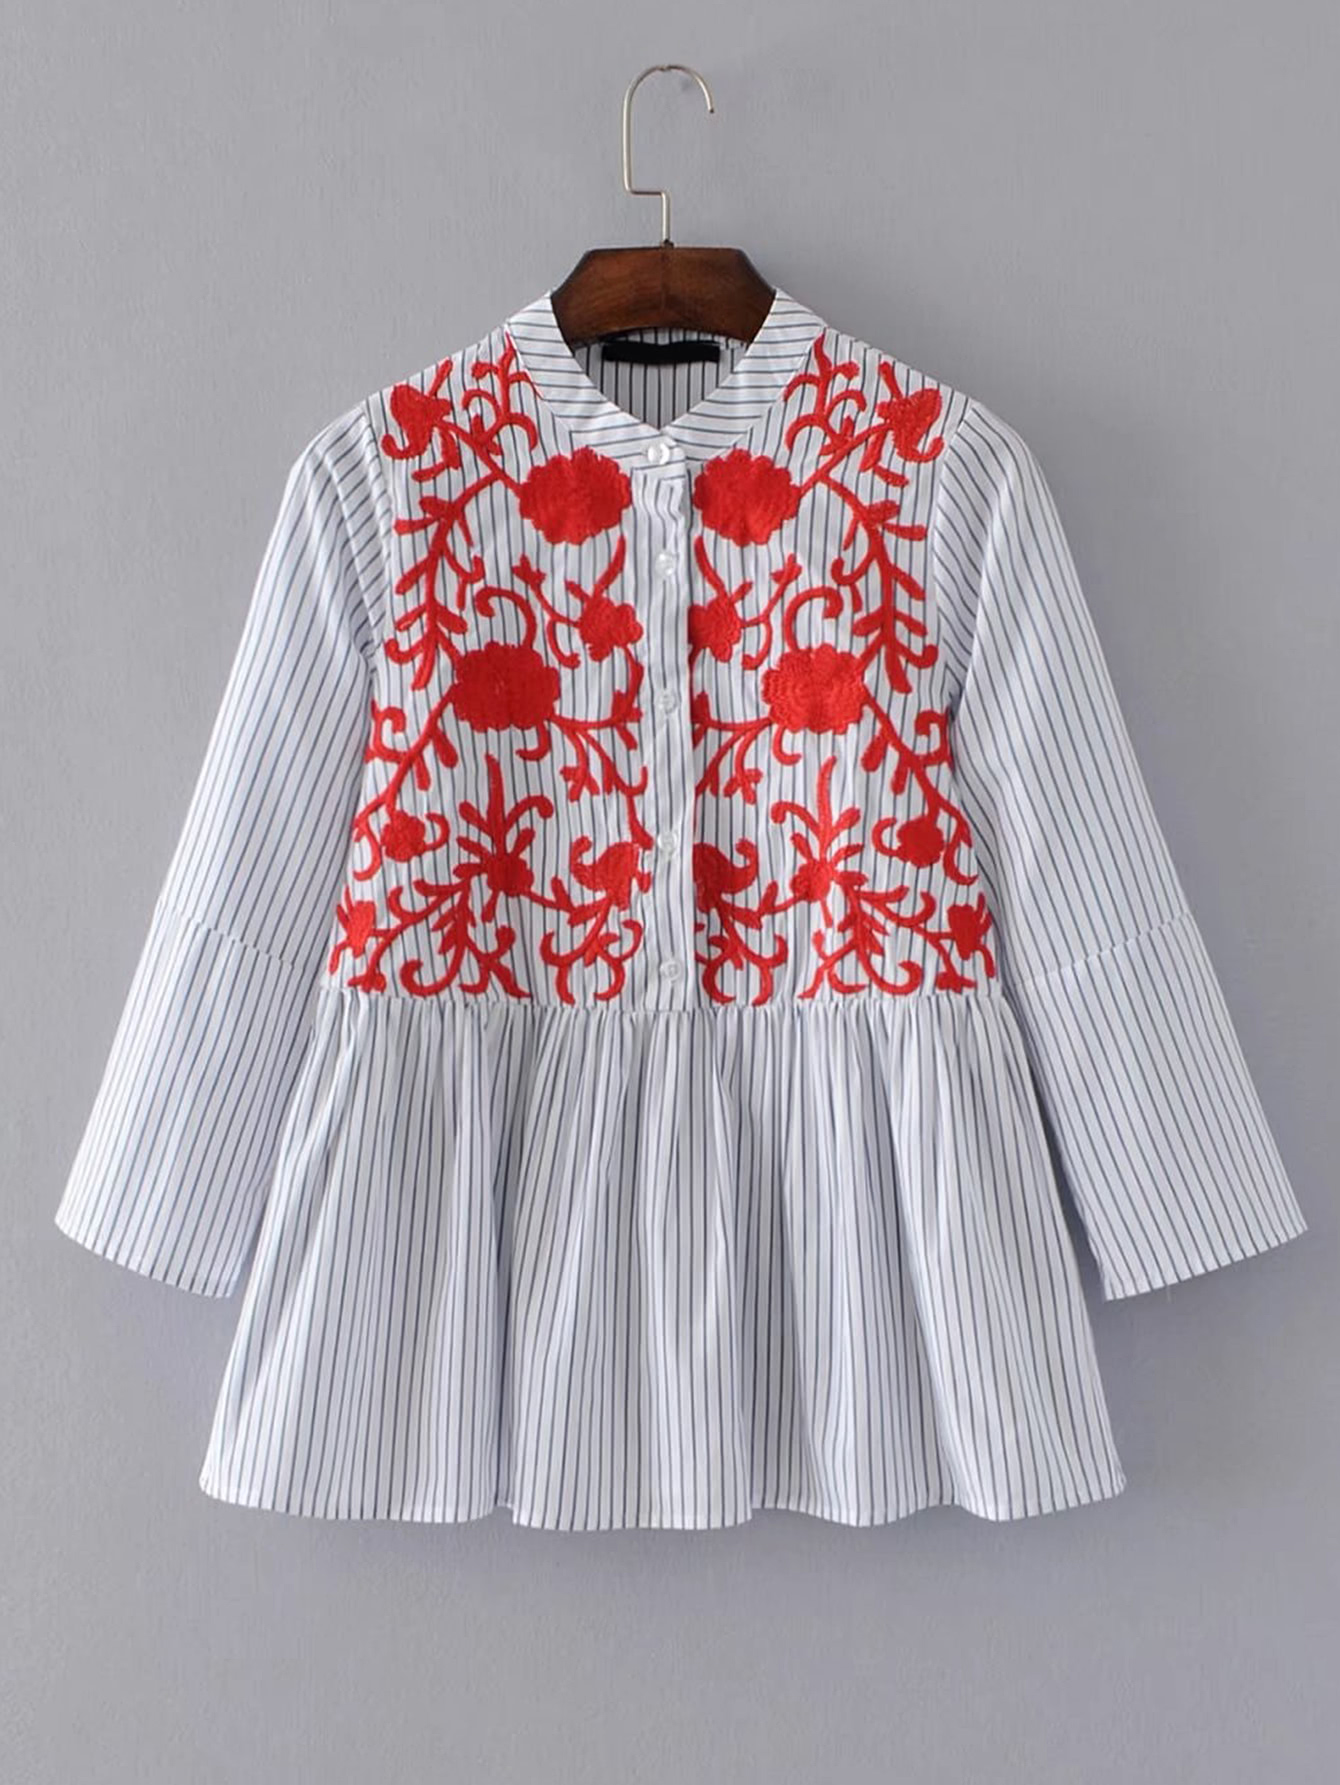 Band Collar Vertical Striped Embroidery Blouse band collar floral blouse